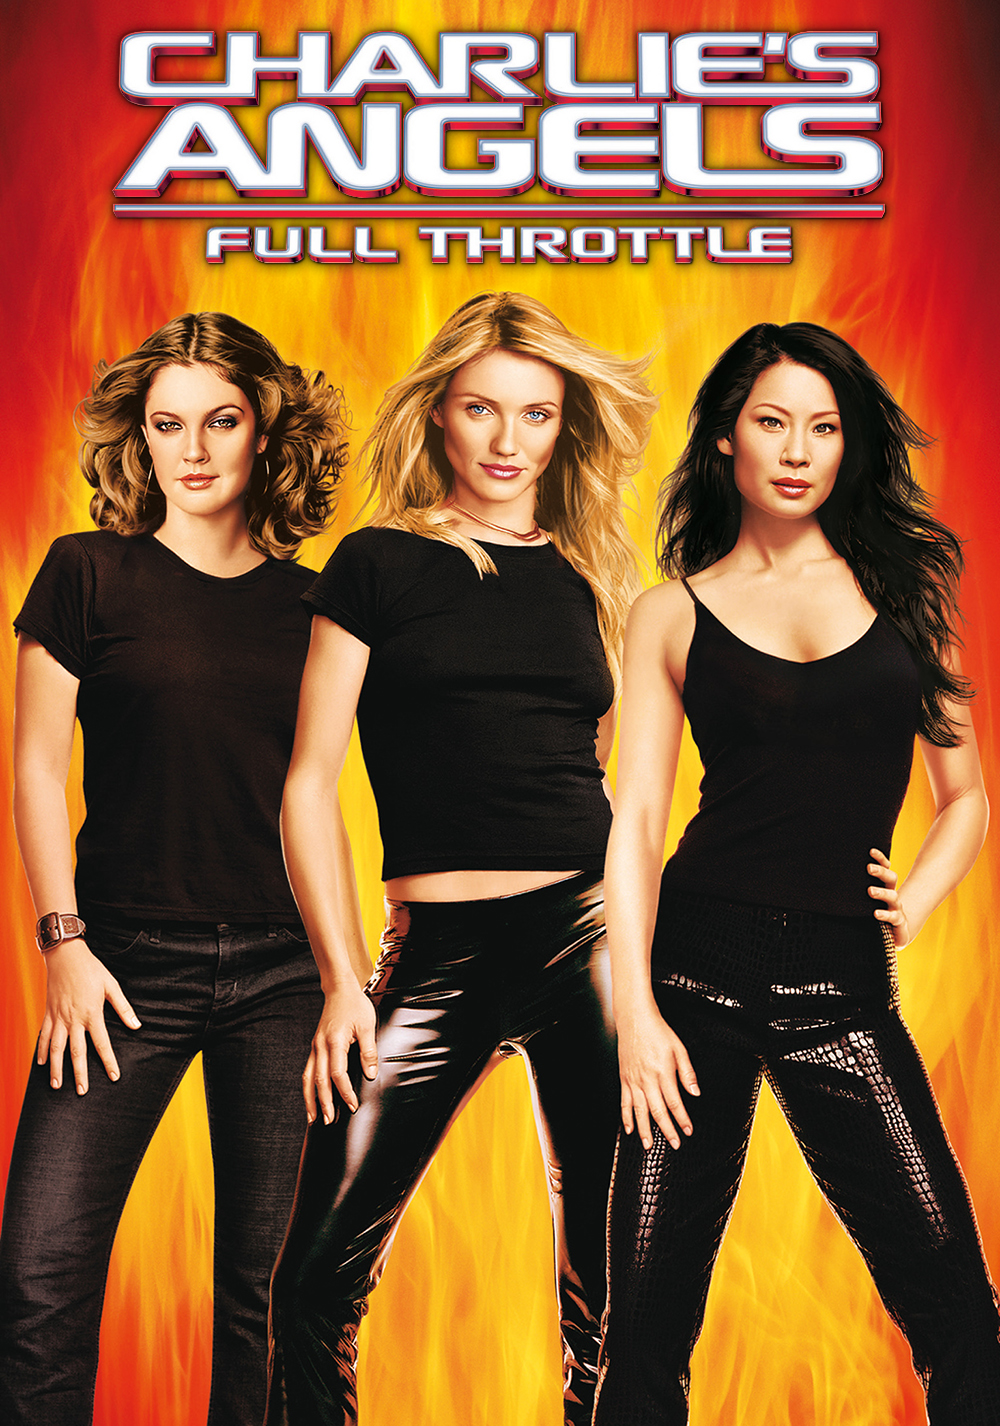 charlies-angels-full-throttle-52cecb529a49e.jpg